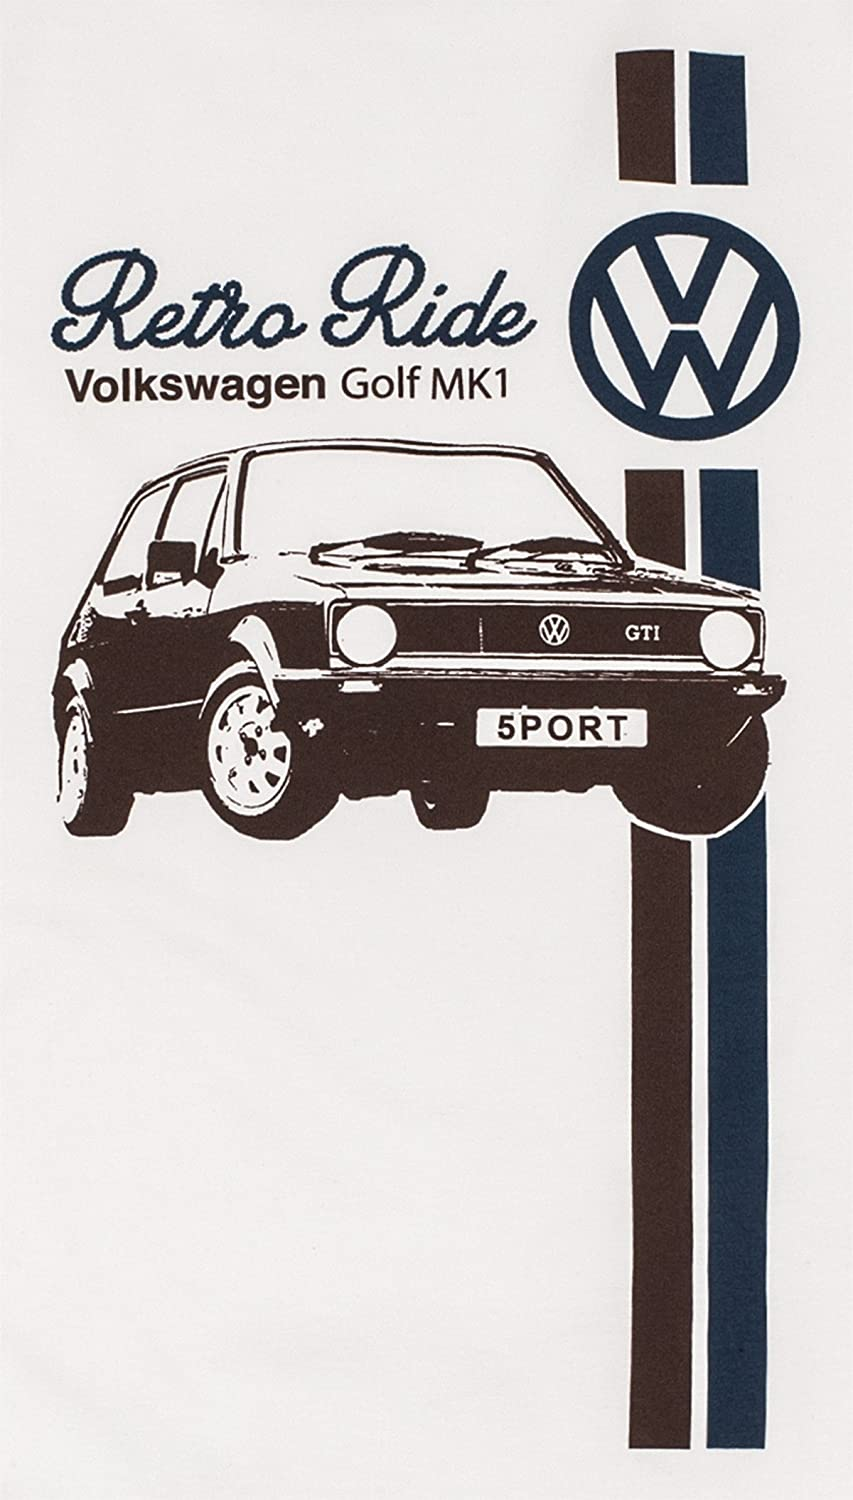 Mens 'Retro Ride' VW Golf Mk1 GTI T-Shirt Volkswagen 'Official Licensed'  Product - Small - White: Amazon.co.uk: Clothing